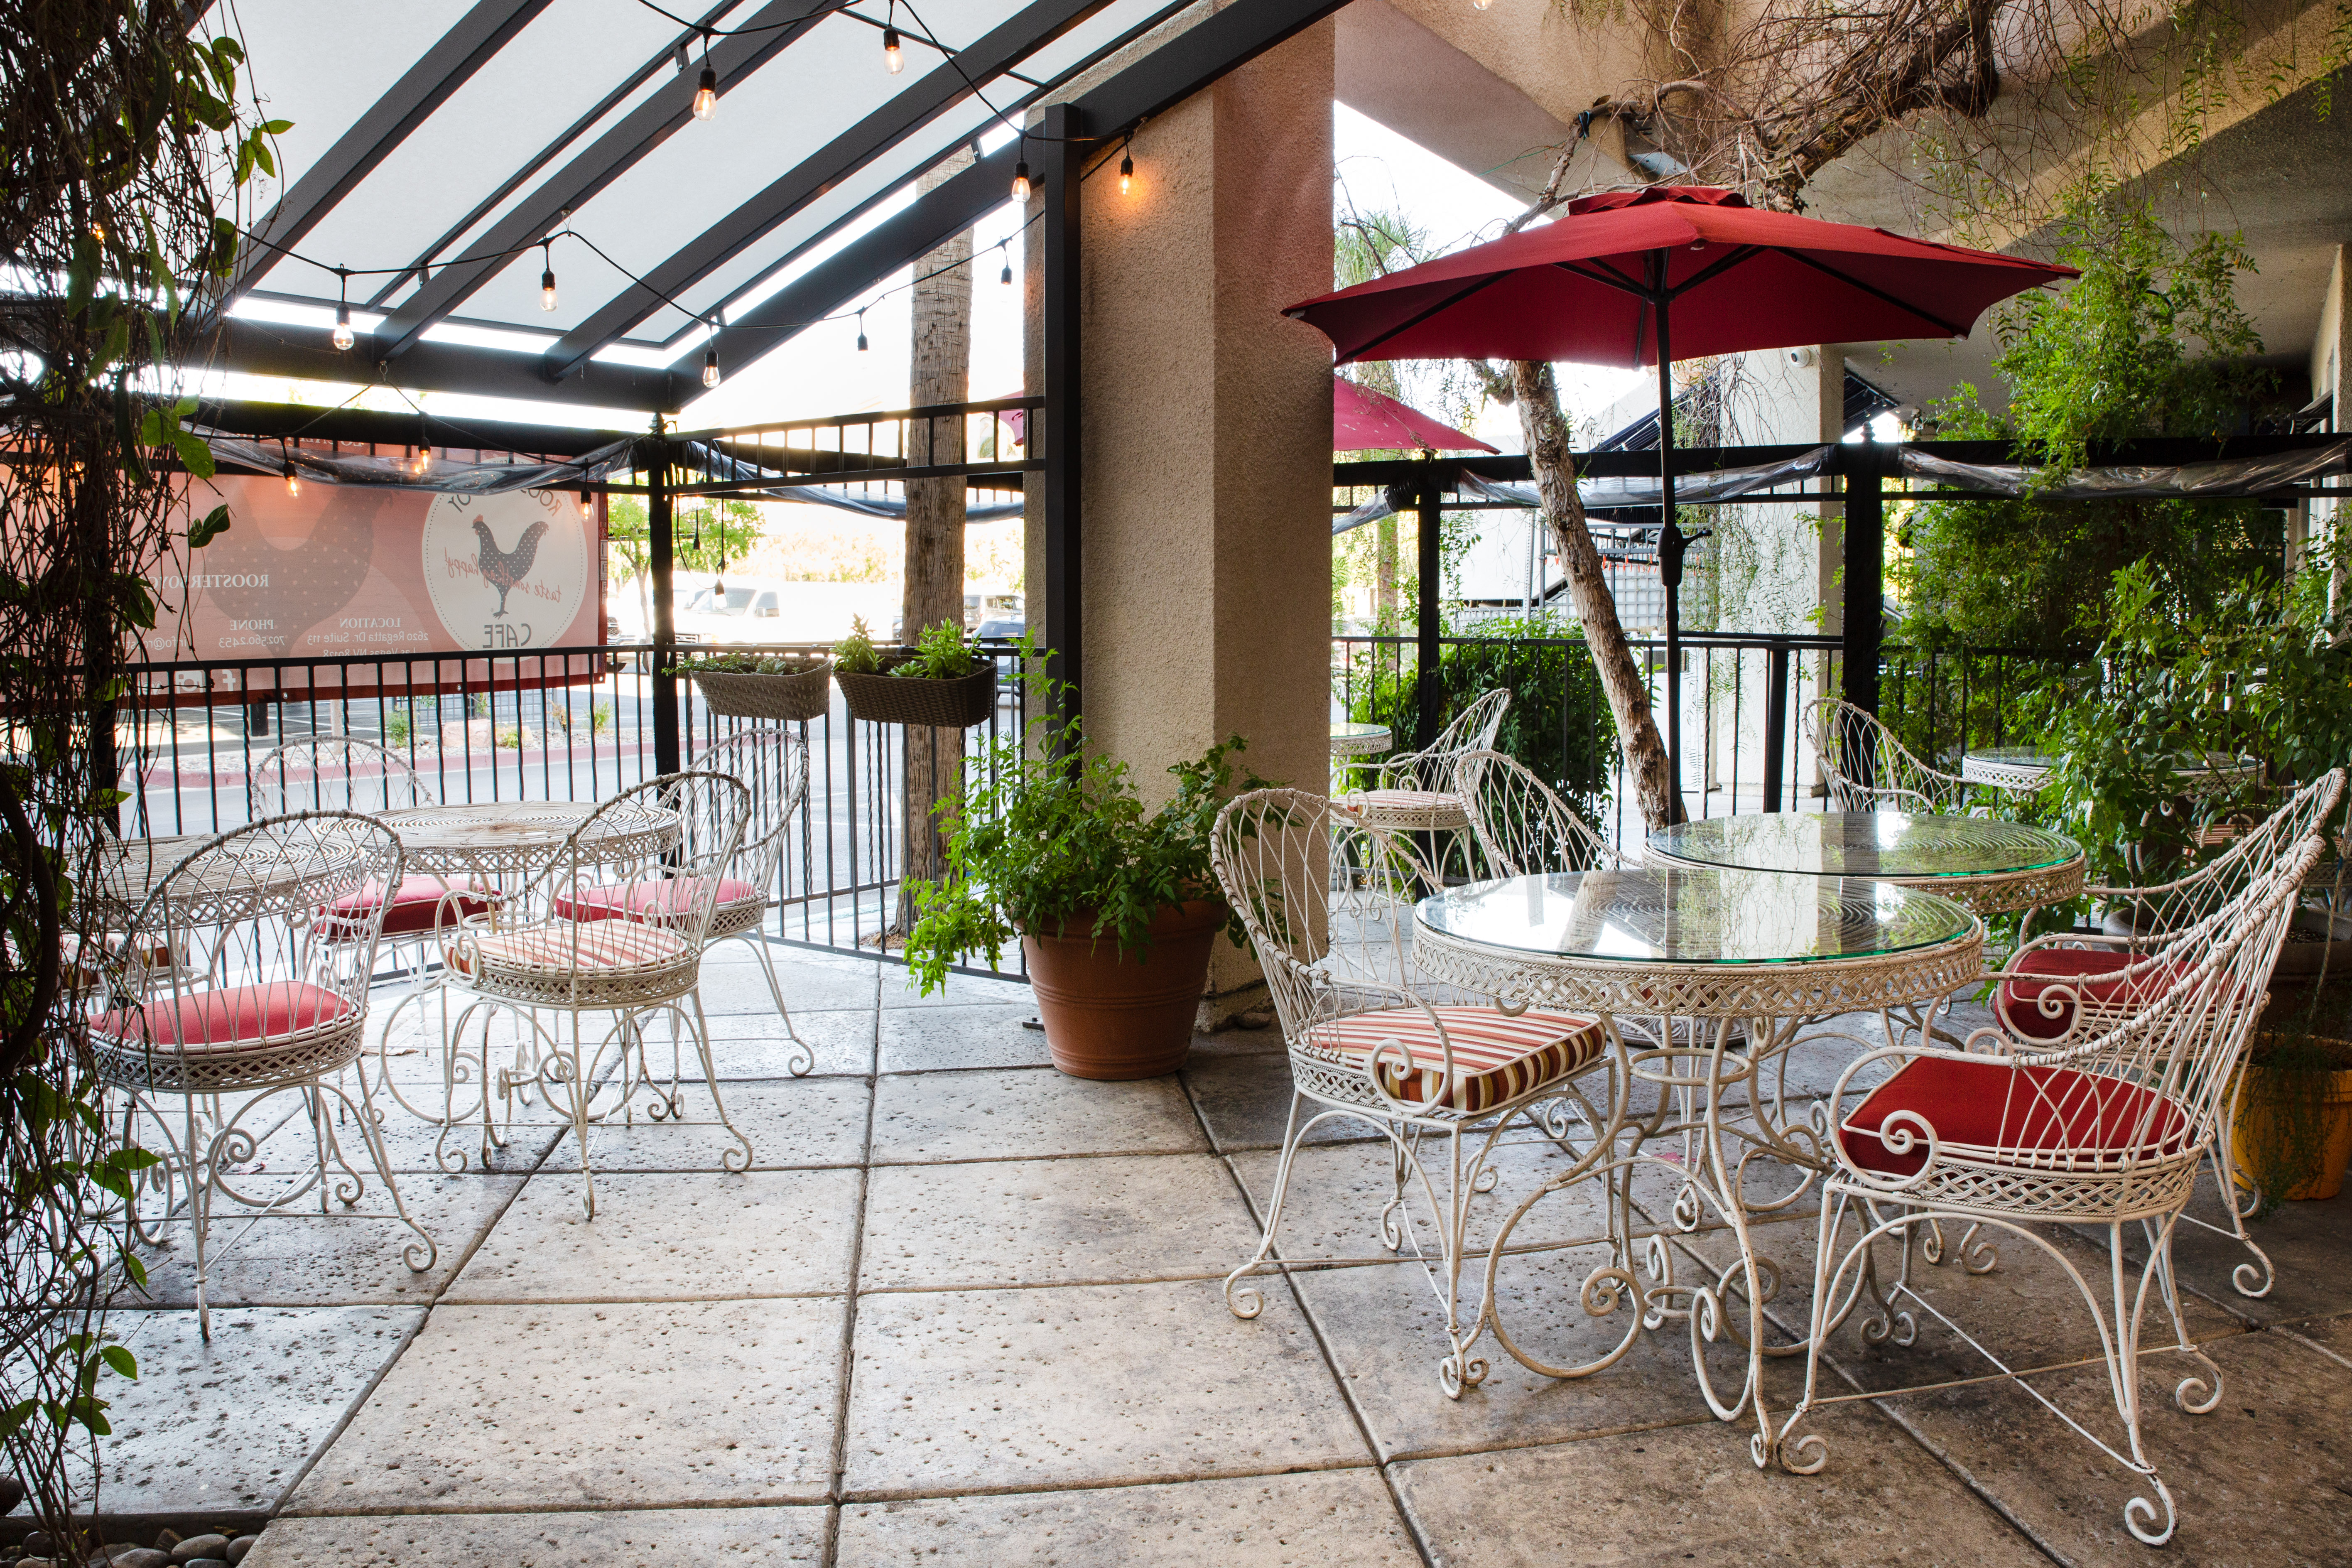 The patio at Rooster Boy Cafe